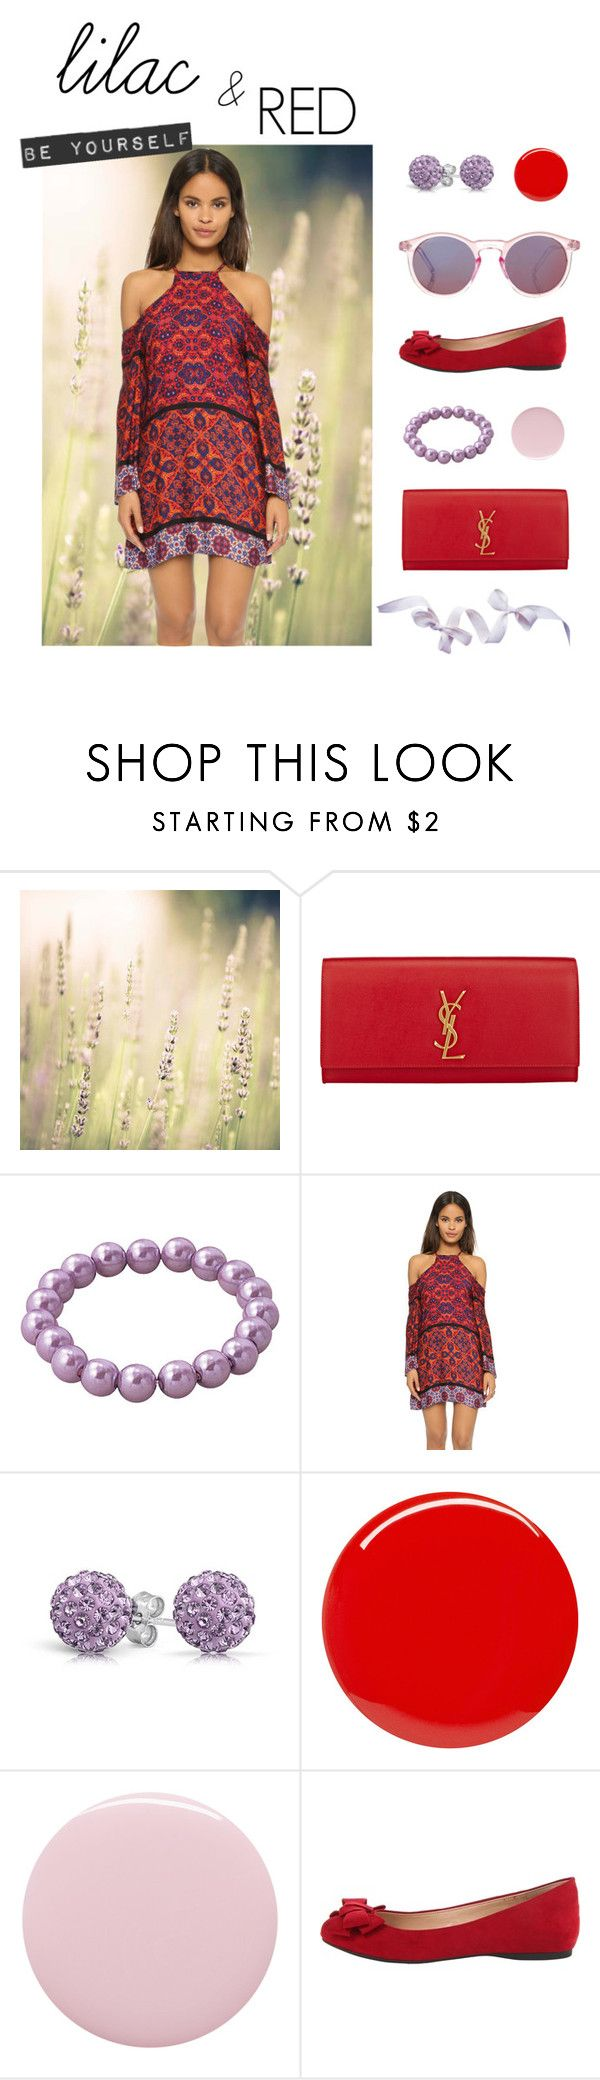 """""""Return to Spring"""" by fantalisa on Polyvore featuring moda, French Country, Yves Saint Laurent, MINKPINK, Bling Jewelry, Deborah Lippmann, Jessica Simpson e Topshop"""